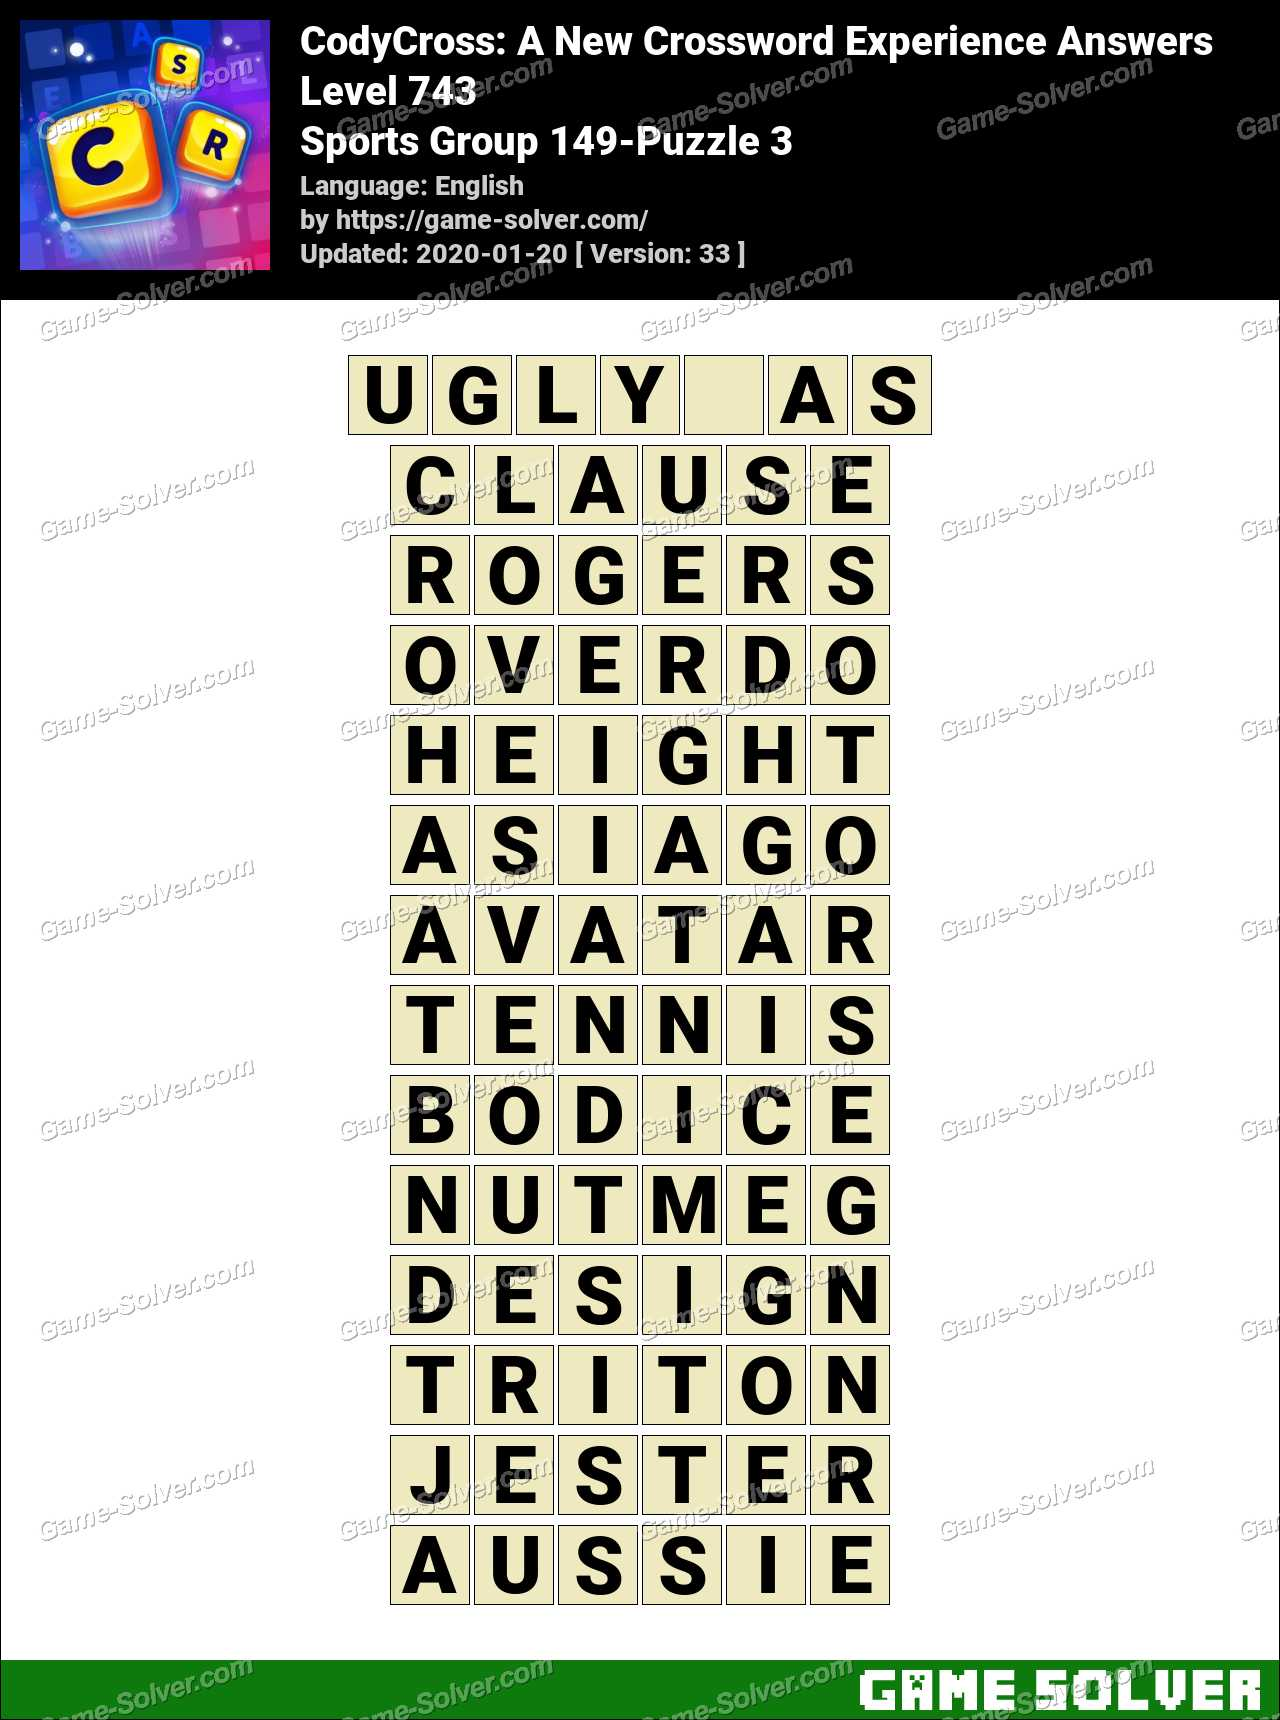 CodyCross Sports Group 149-Puzzle 3 Answers